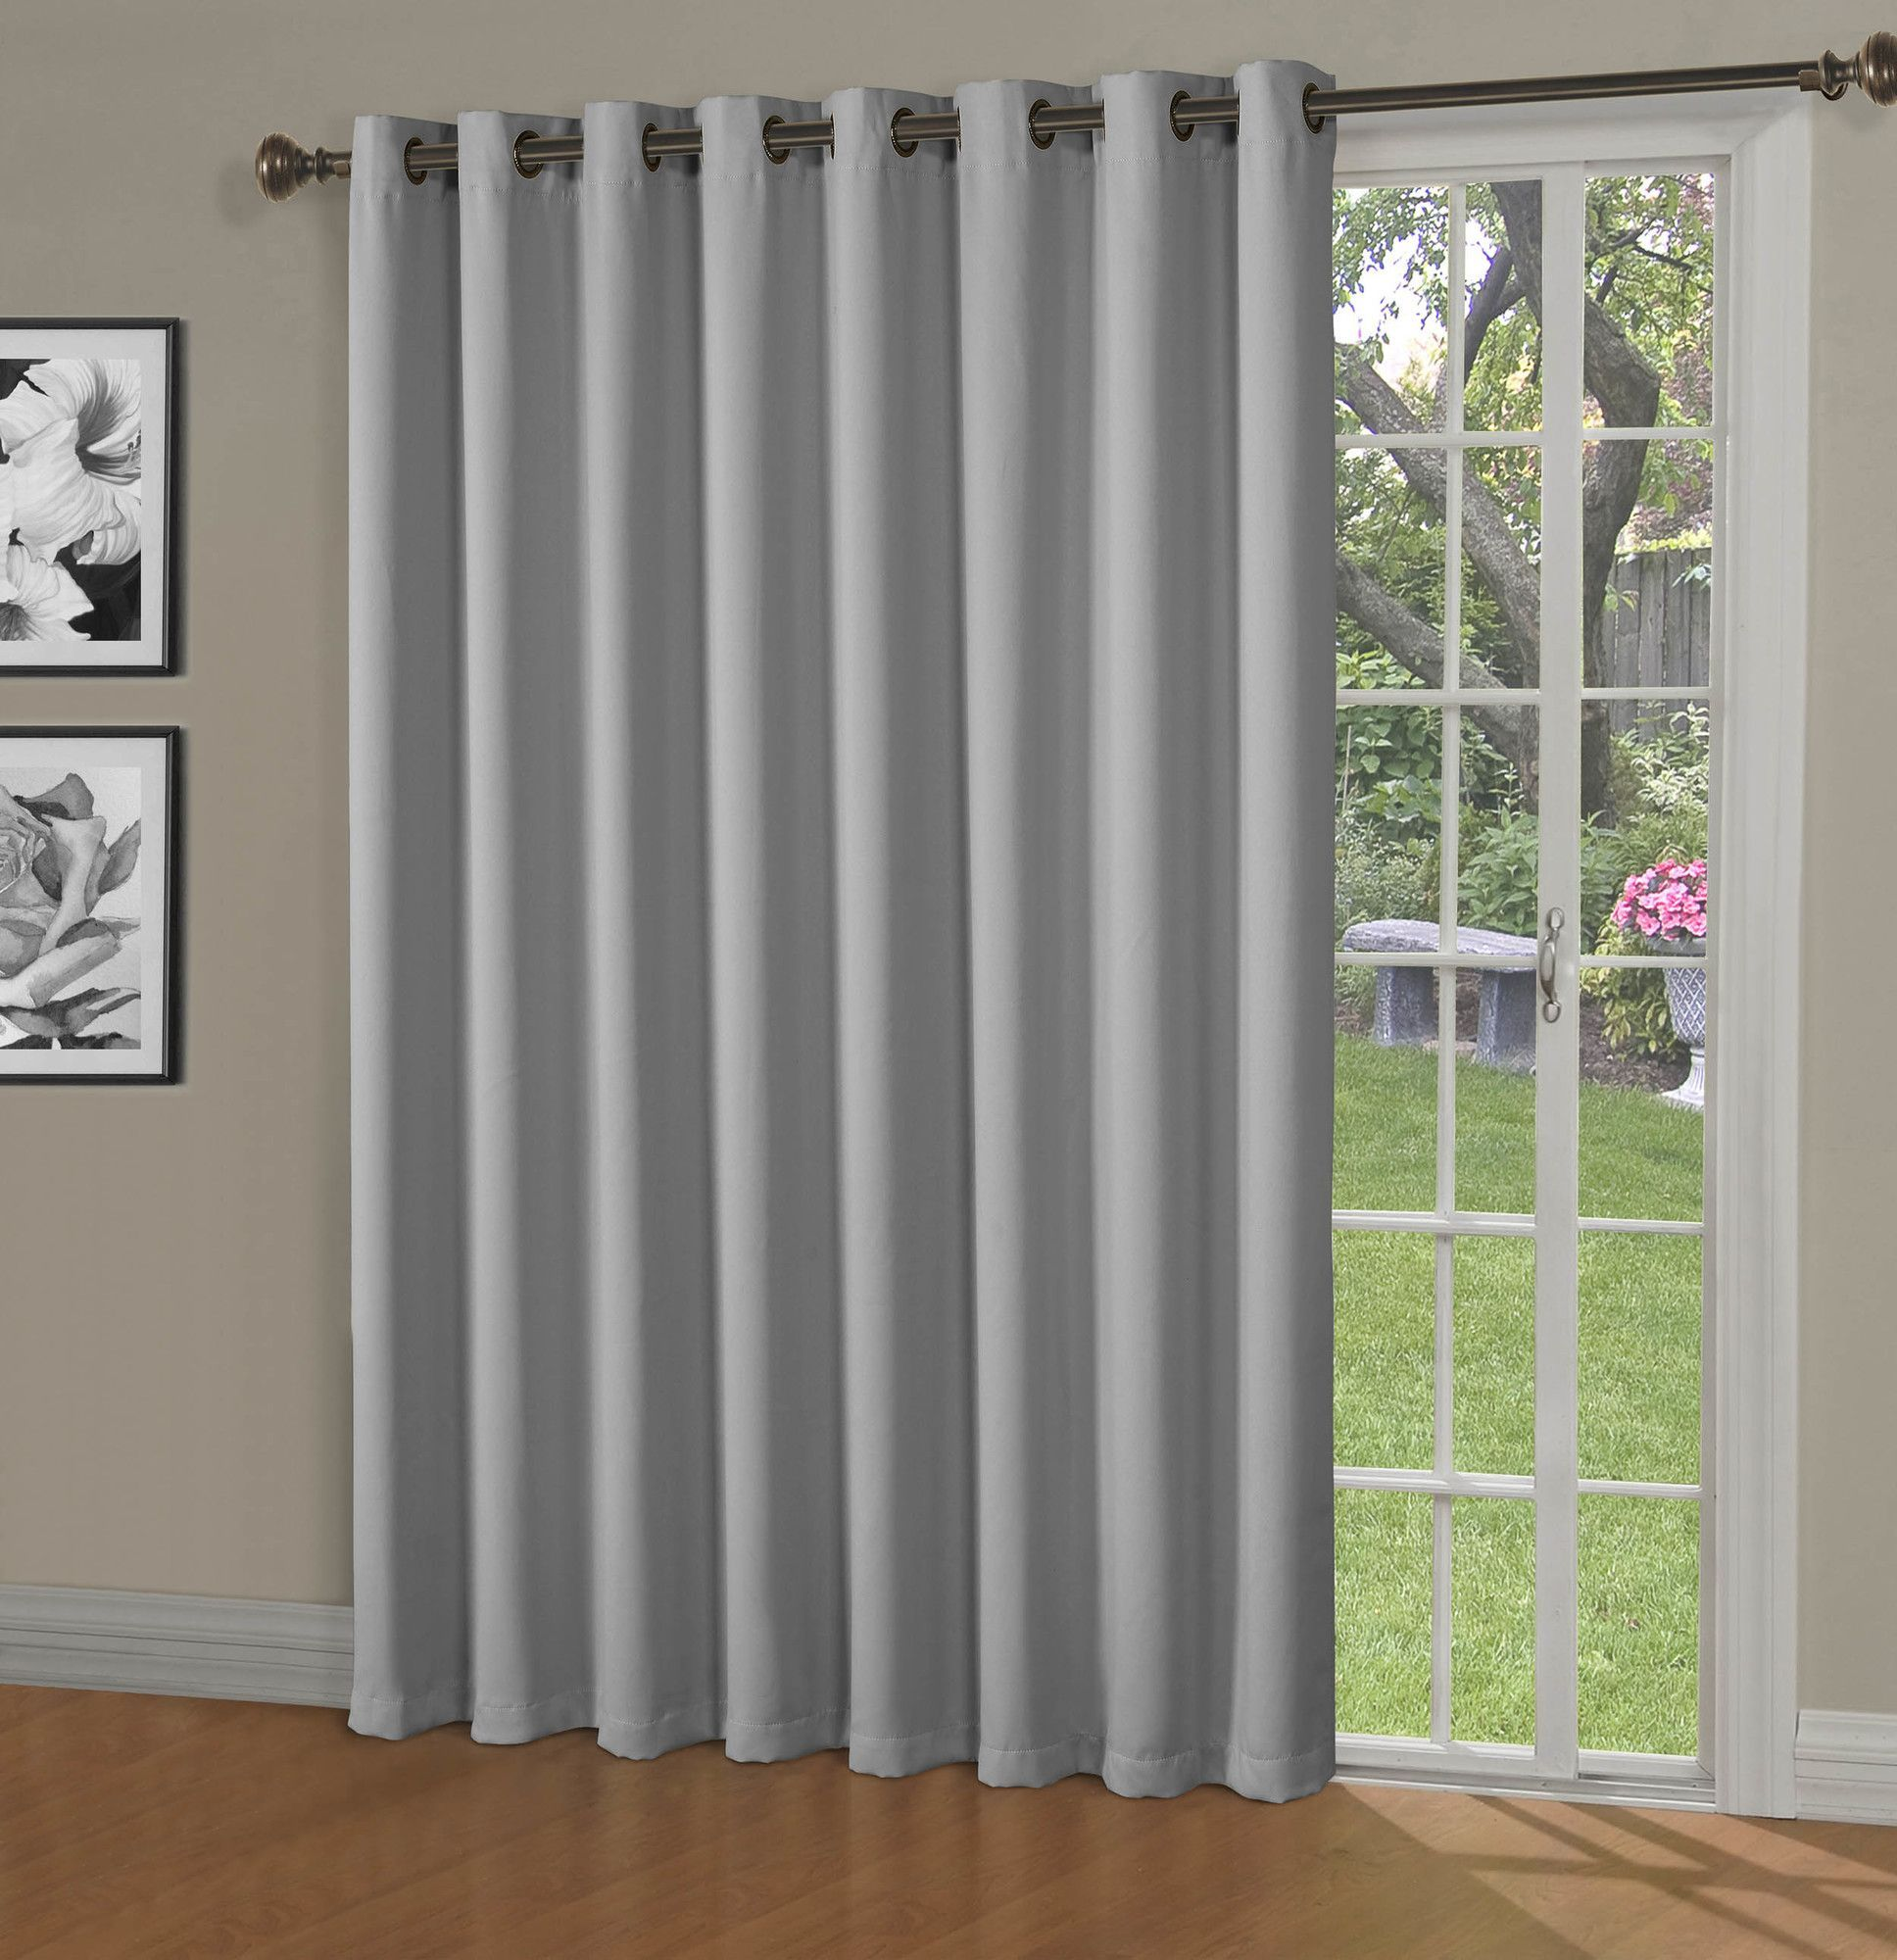 Maya Blackout Thermal Patio Door Extra Wide Grommet Curtain Panel